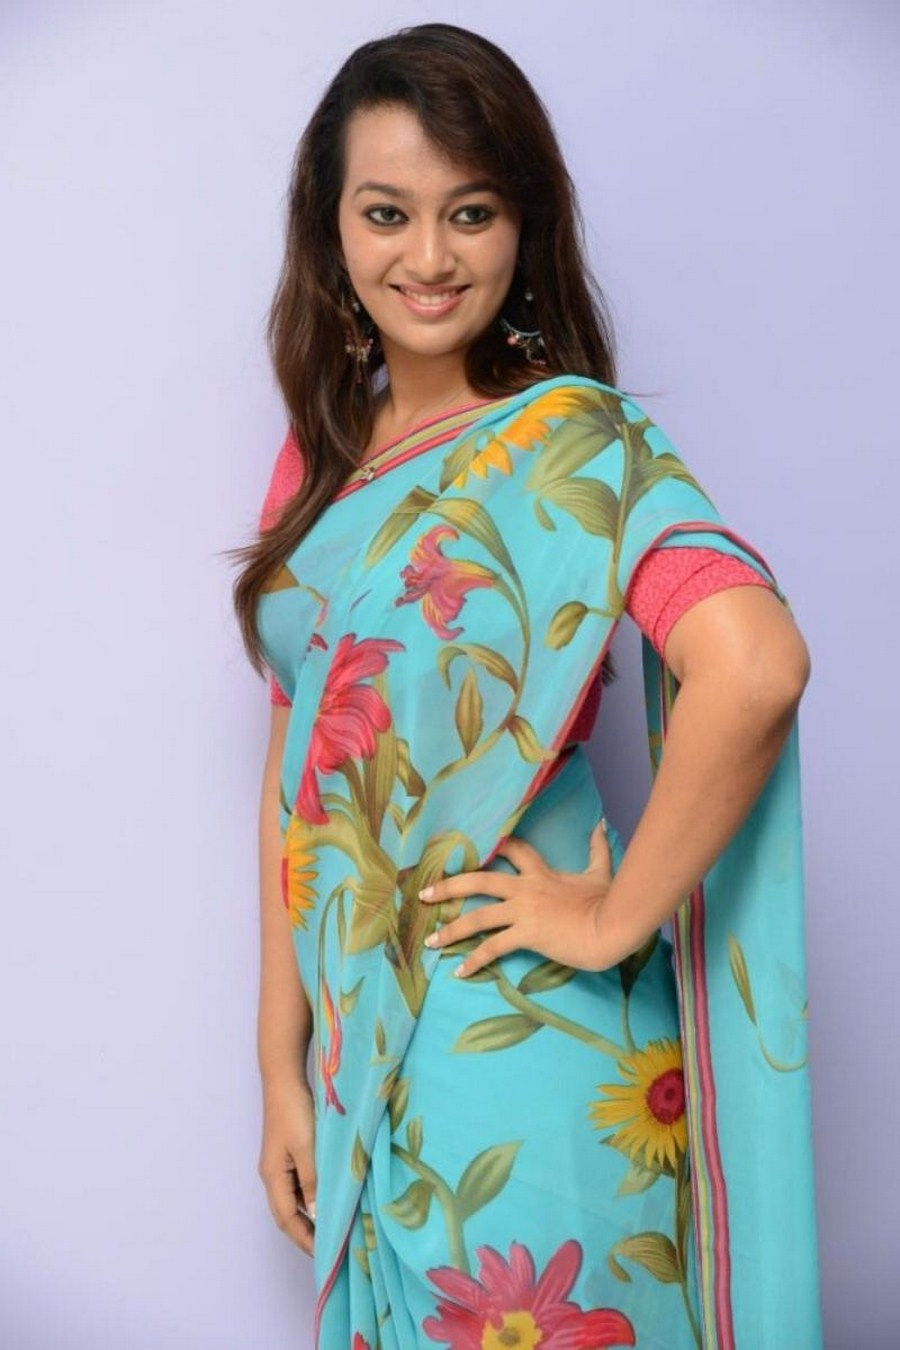 Telgu actress Easter Noronha in saree